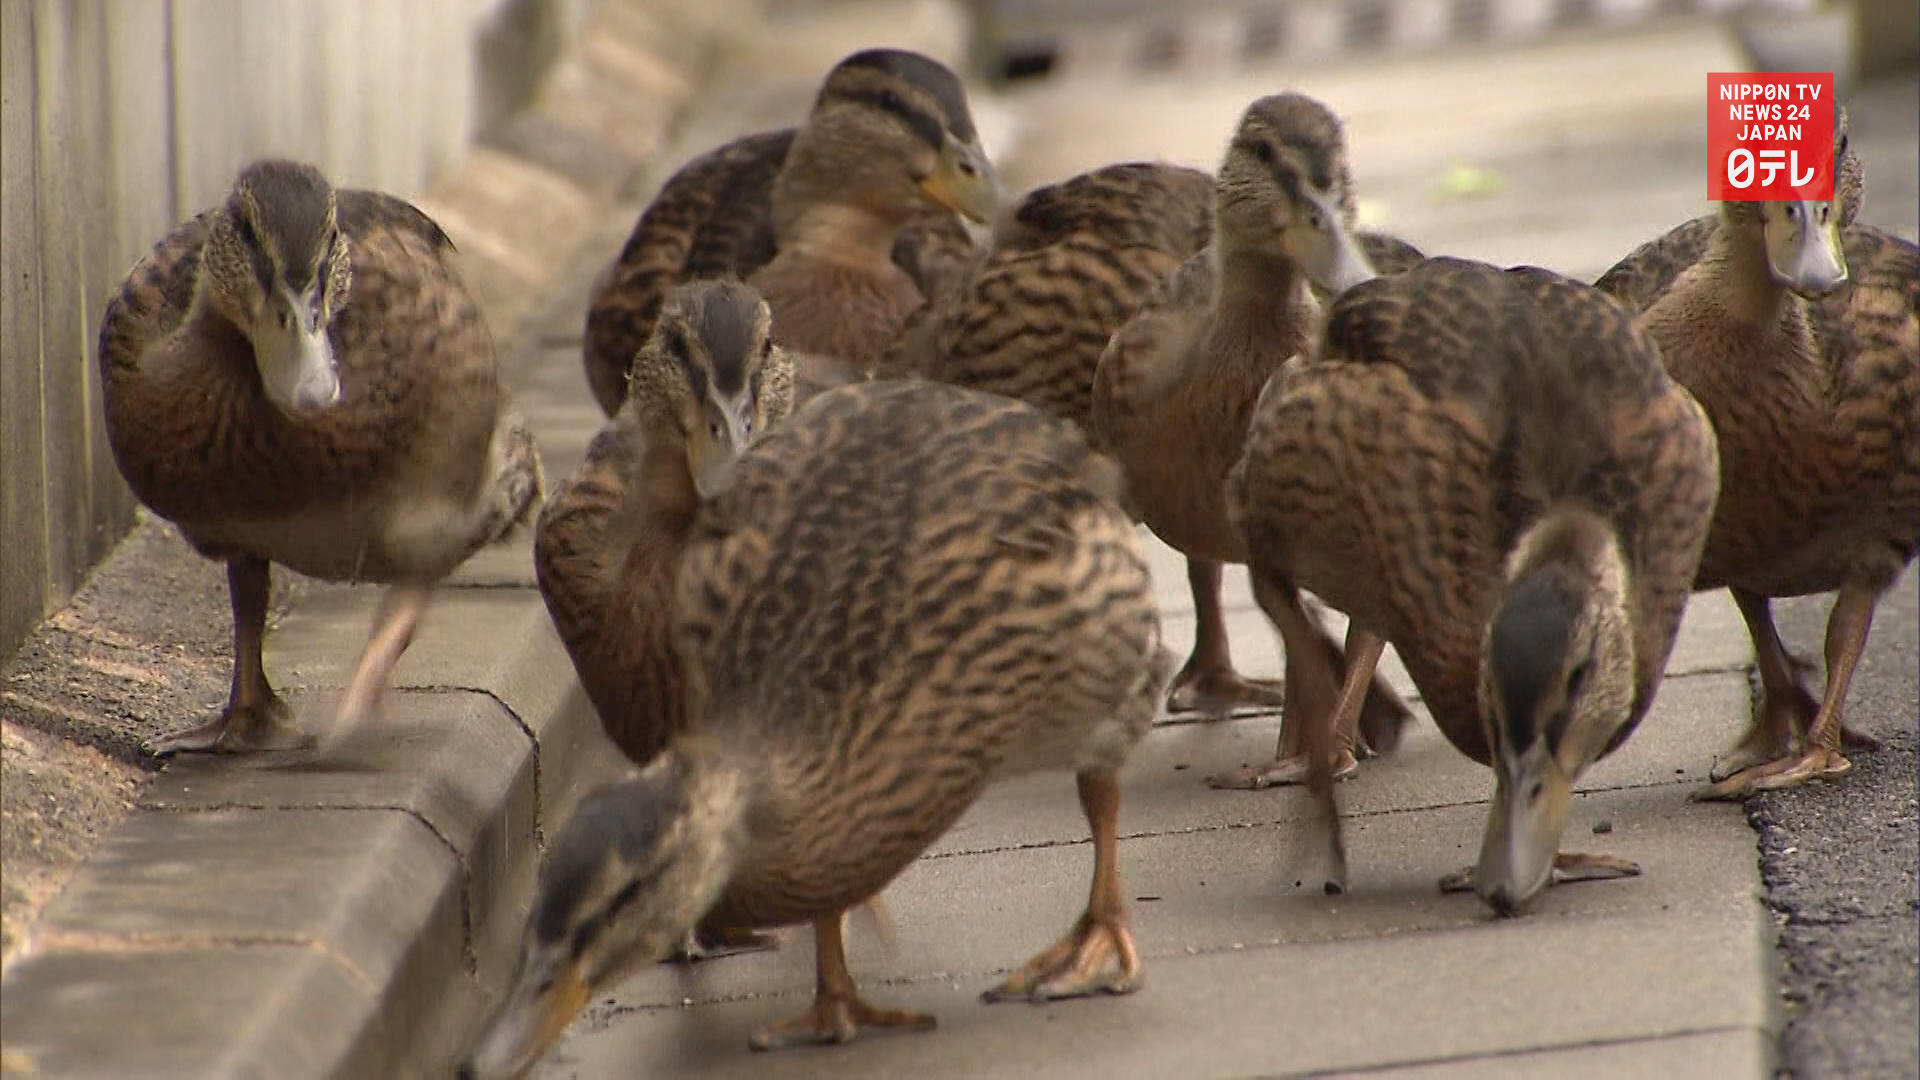 Ducklings move from temple to river in Kyoto